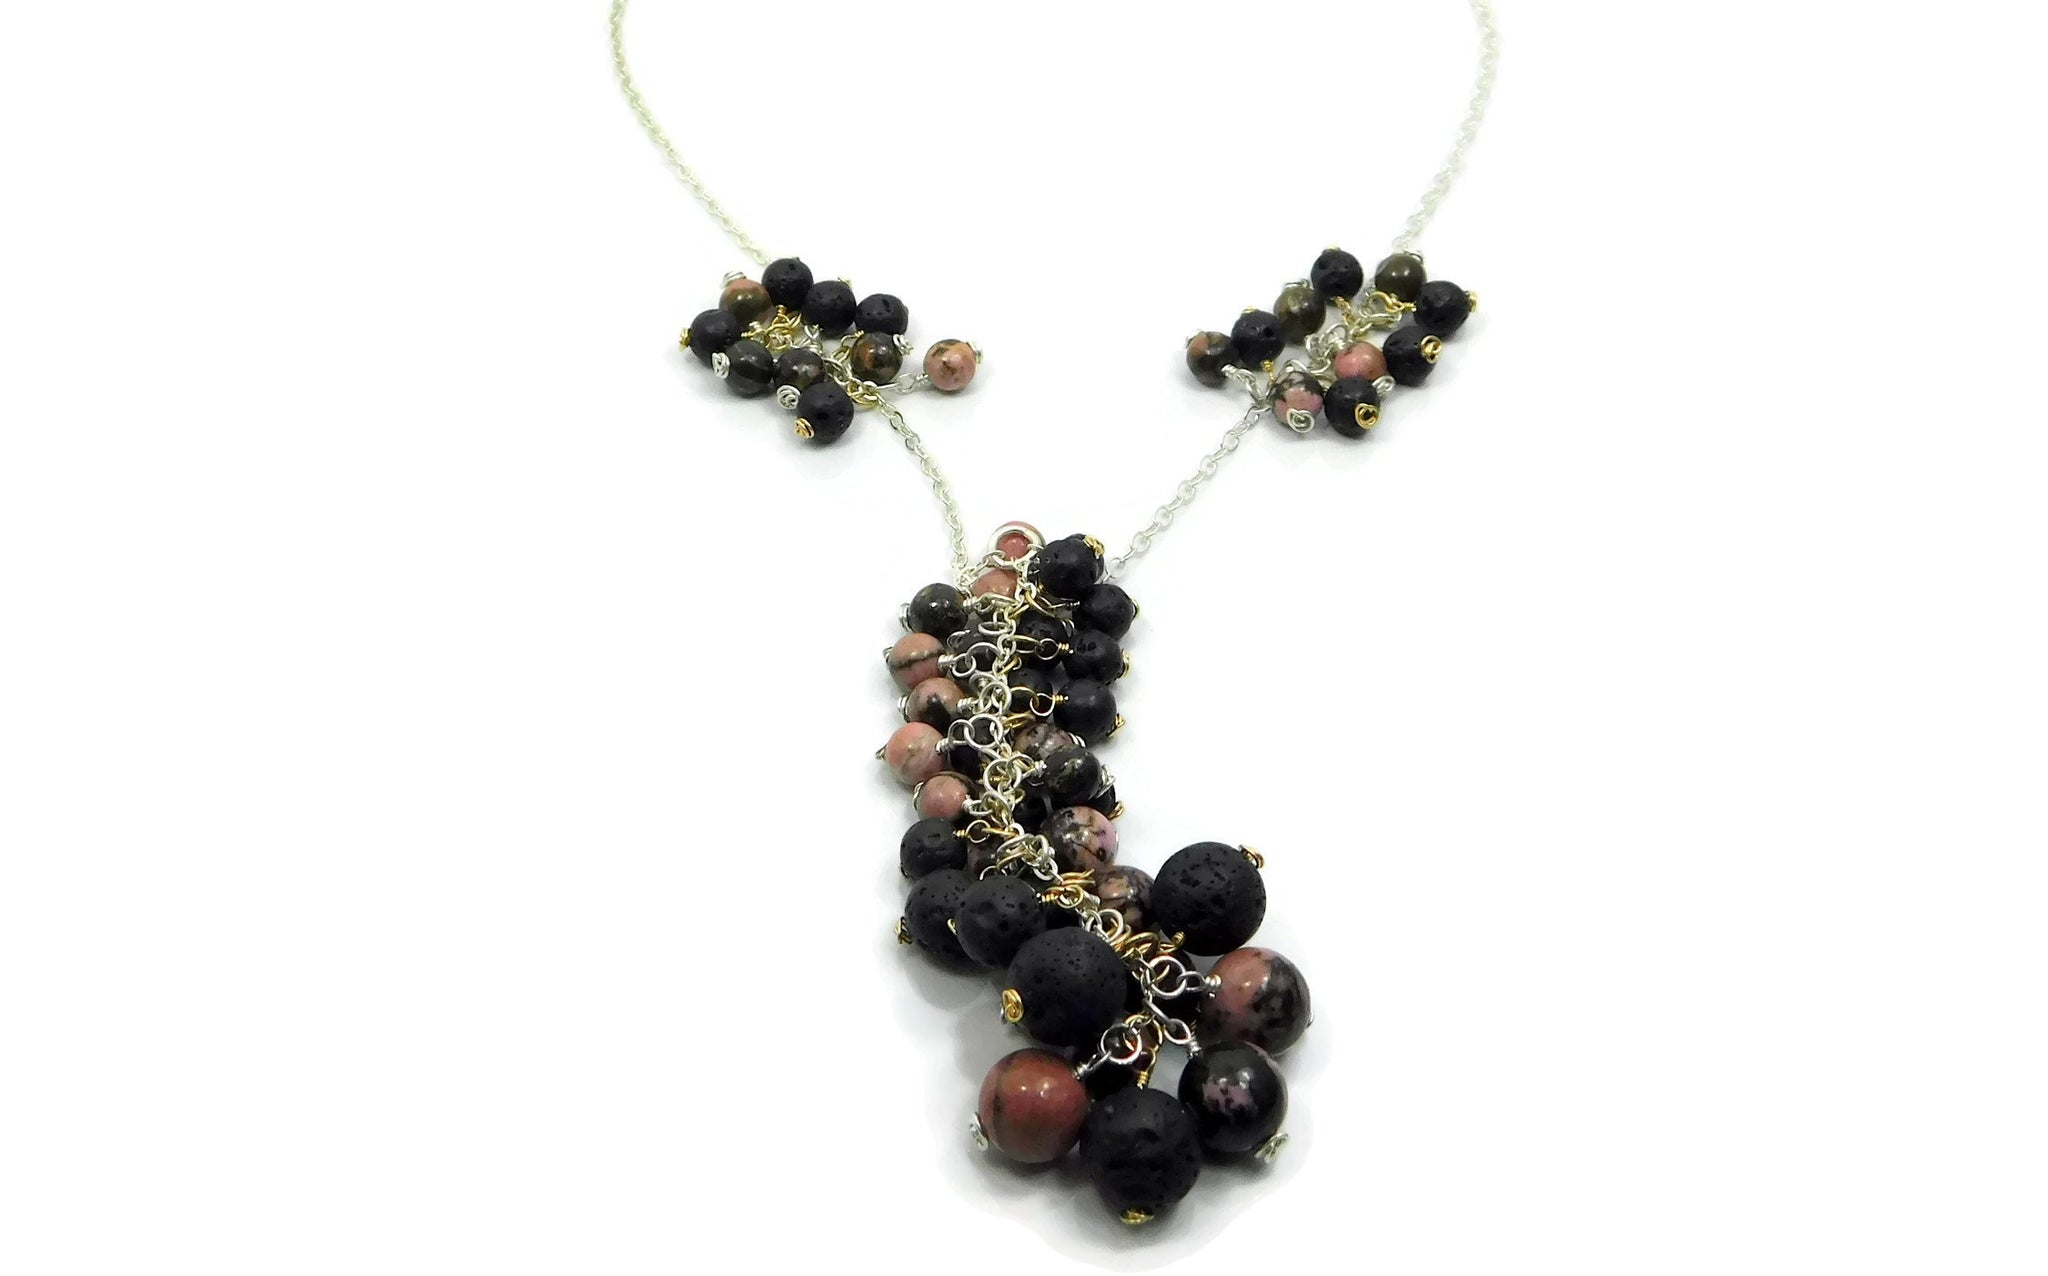 Rhodonite and Lava Stone Necklace in sterling silver and 14kt gold fill cold fusion jewelry gold and silver jewelry handmade silver jewelry sterling silver jewelry artisan jewelry handmade gemstone jewelry one of a kind jewelry unique jewelry